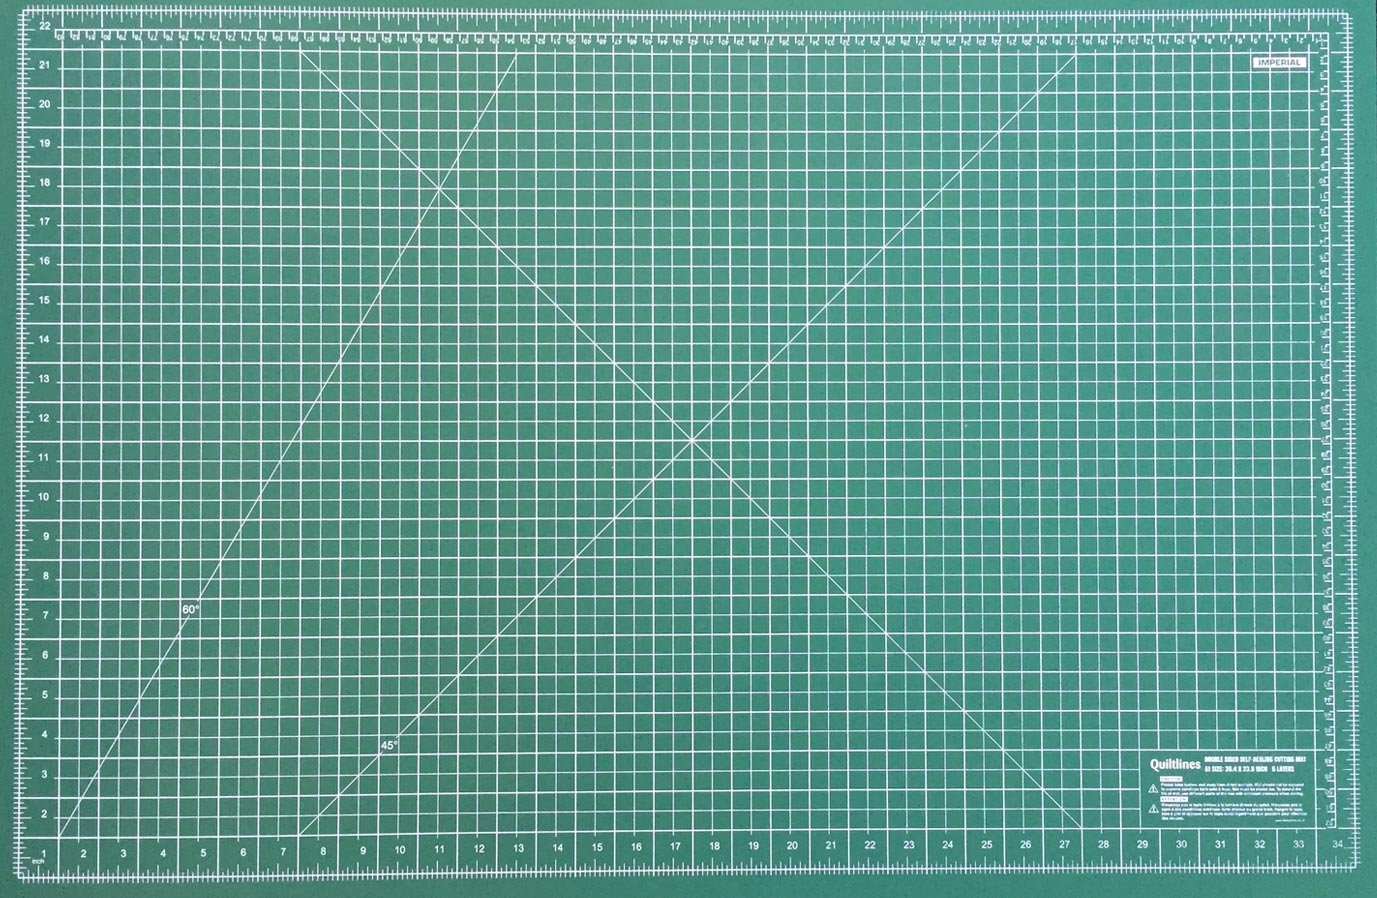 "Size A1 Double Sided Self Healing Cutting Mat with 5 Layers Imperial & Metric Size 36 x 24"" (60 x 90cm) by Quiltlines"